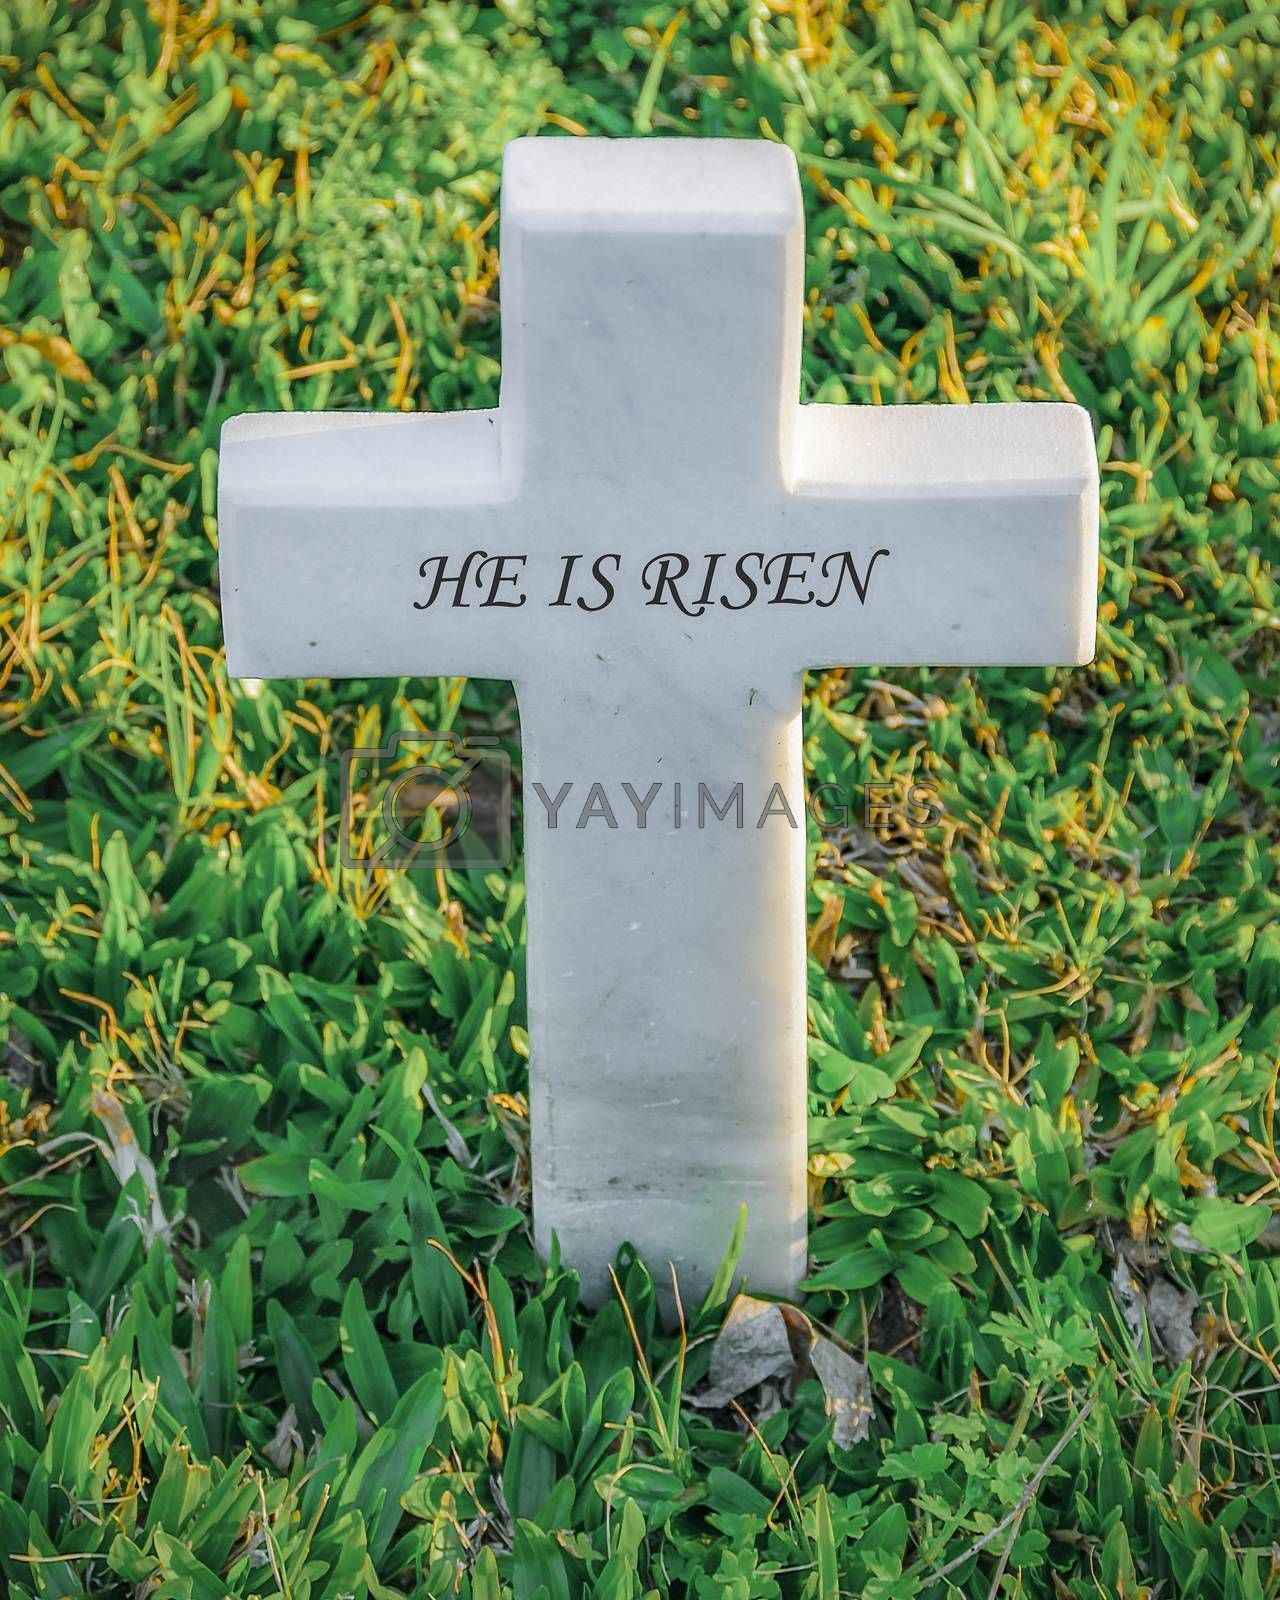 Easter or memorial concept  small cross with he is risen text surrounded by leaves background